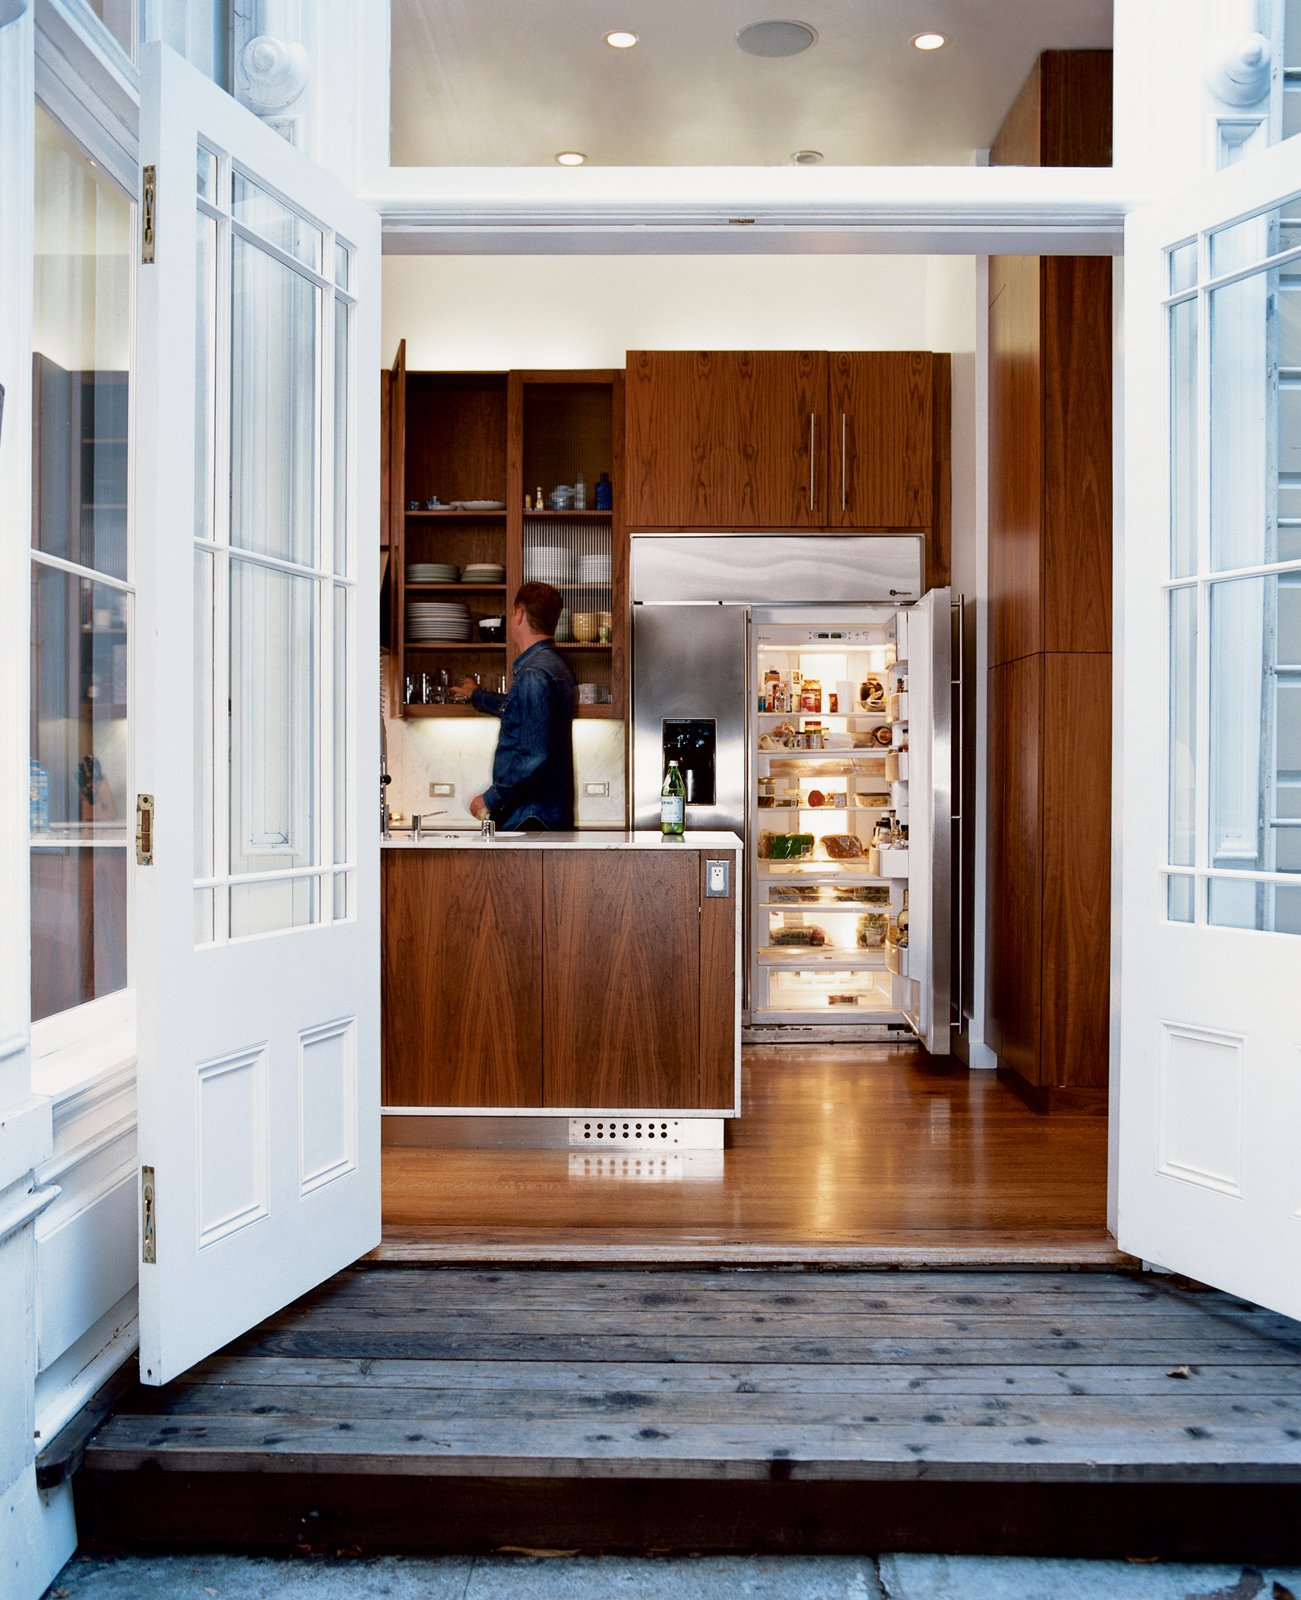 The walnut cabinets in the kitchen, which update and warm the space, were designed by Nilus de Matran and fabricated by George Slack. Taking Liberties - Photo 1 of 8